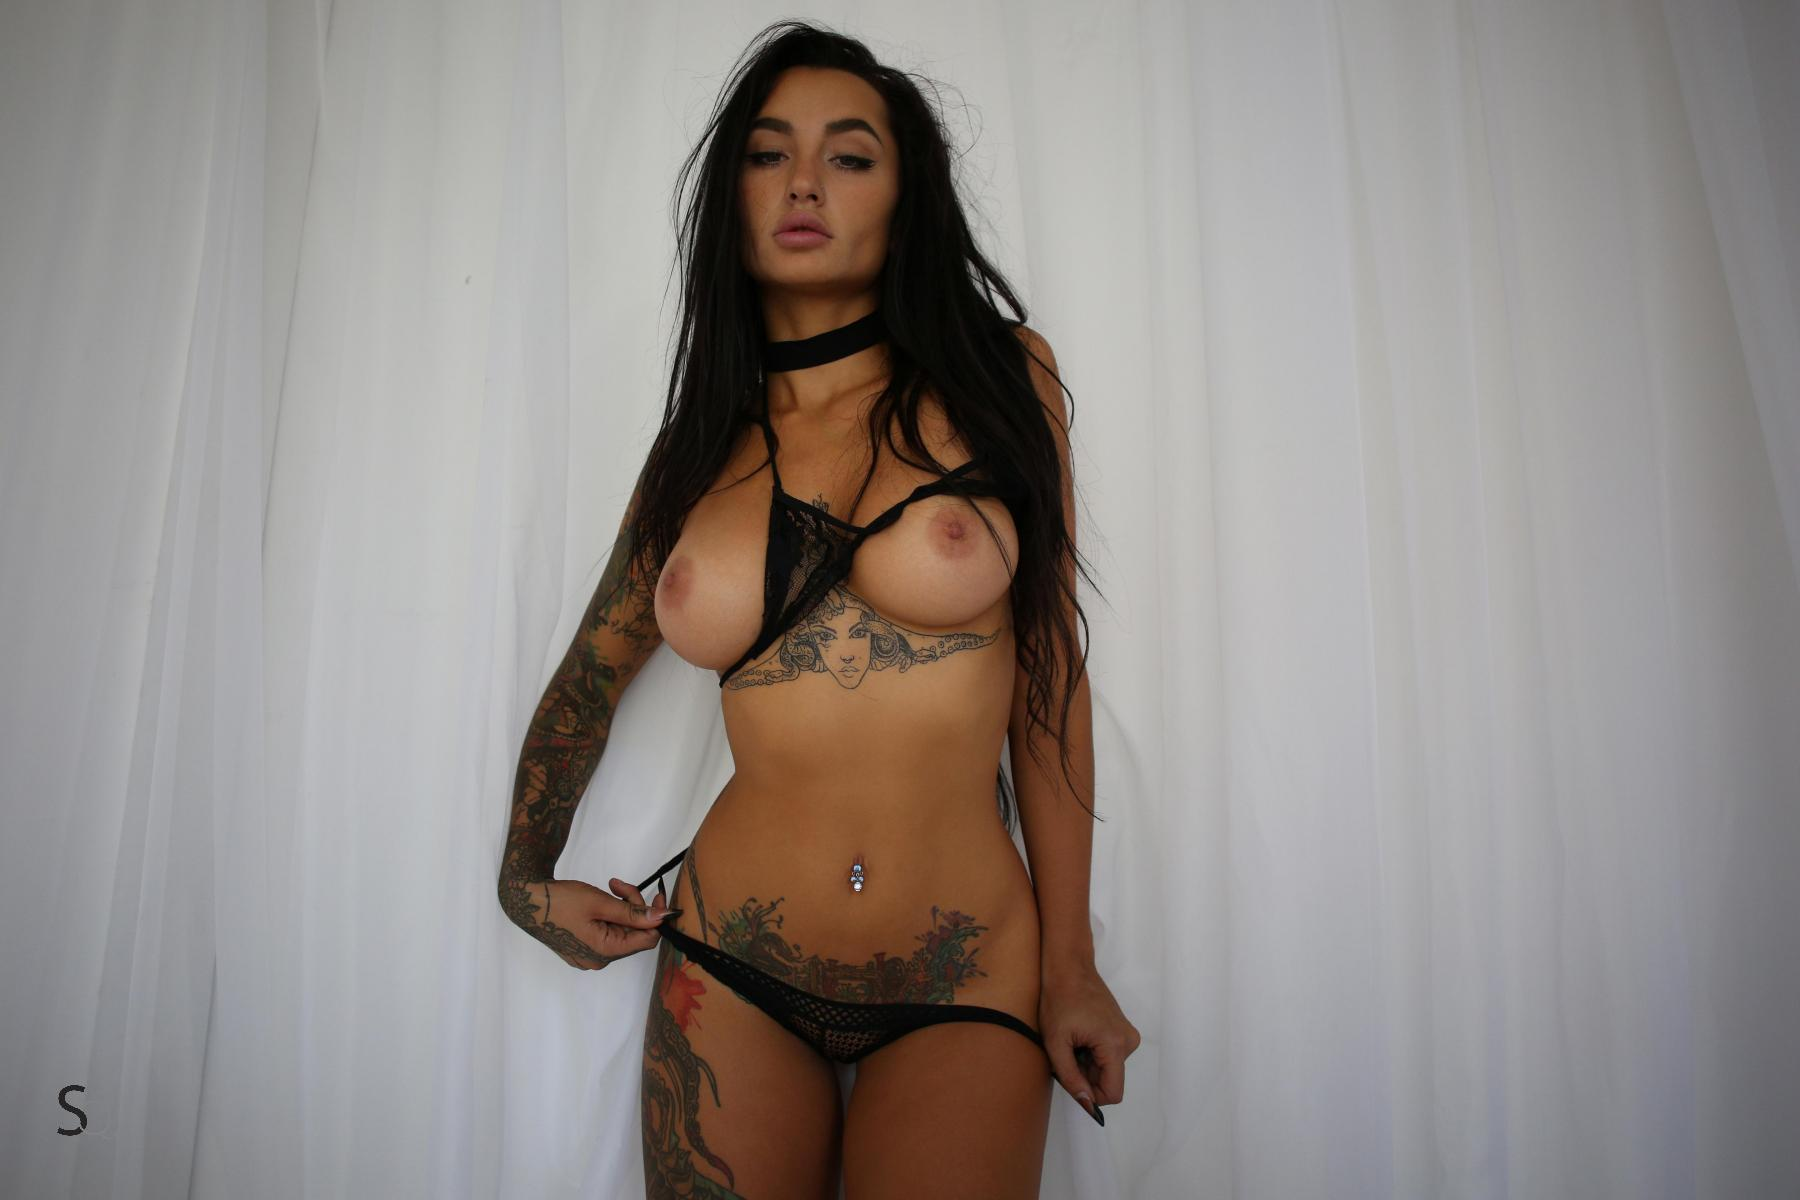 Lee With Hot Friend Porn OnlyFans Leaked Nudes 49